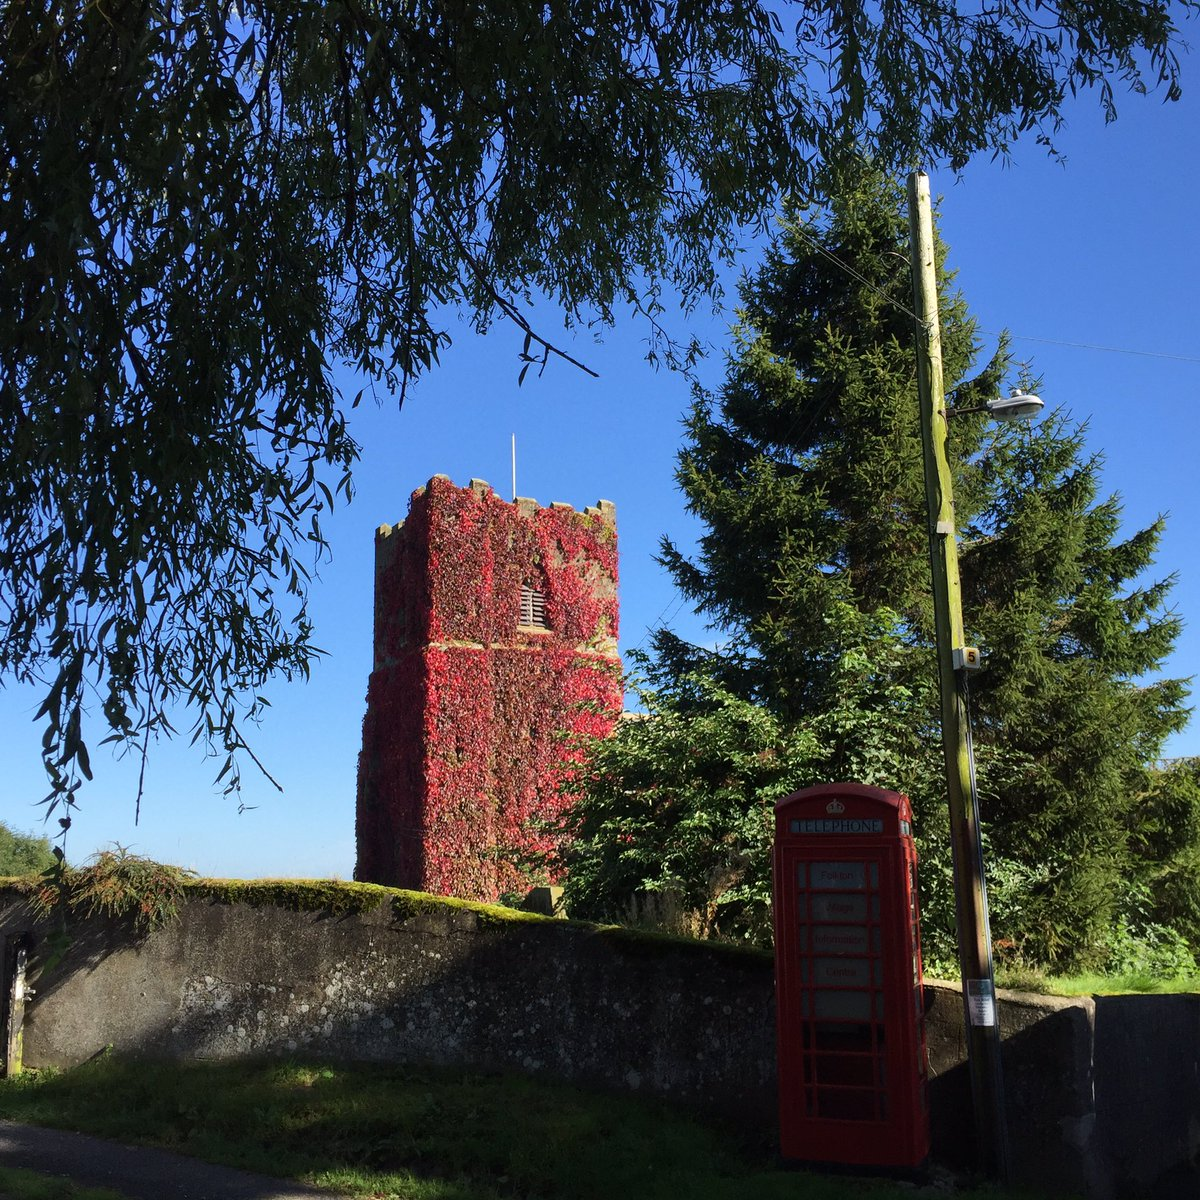 Beautiful #AutumnEquinox morning here in sunny #Scarborough  North Yorkshire Love our Red Telephone Info Box #northyorkshire #Autumn #Church<br>http://pic.twitter.com/Uzx8hZKwAB